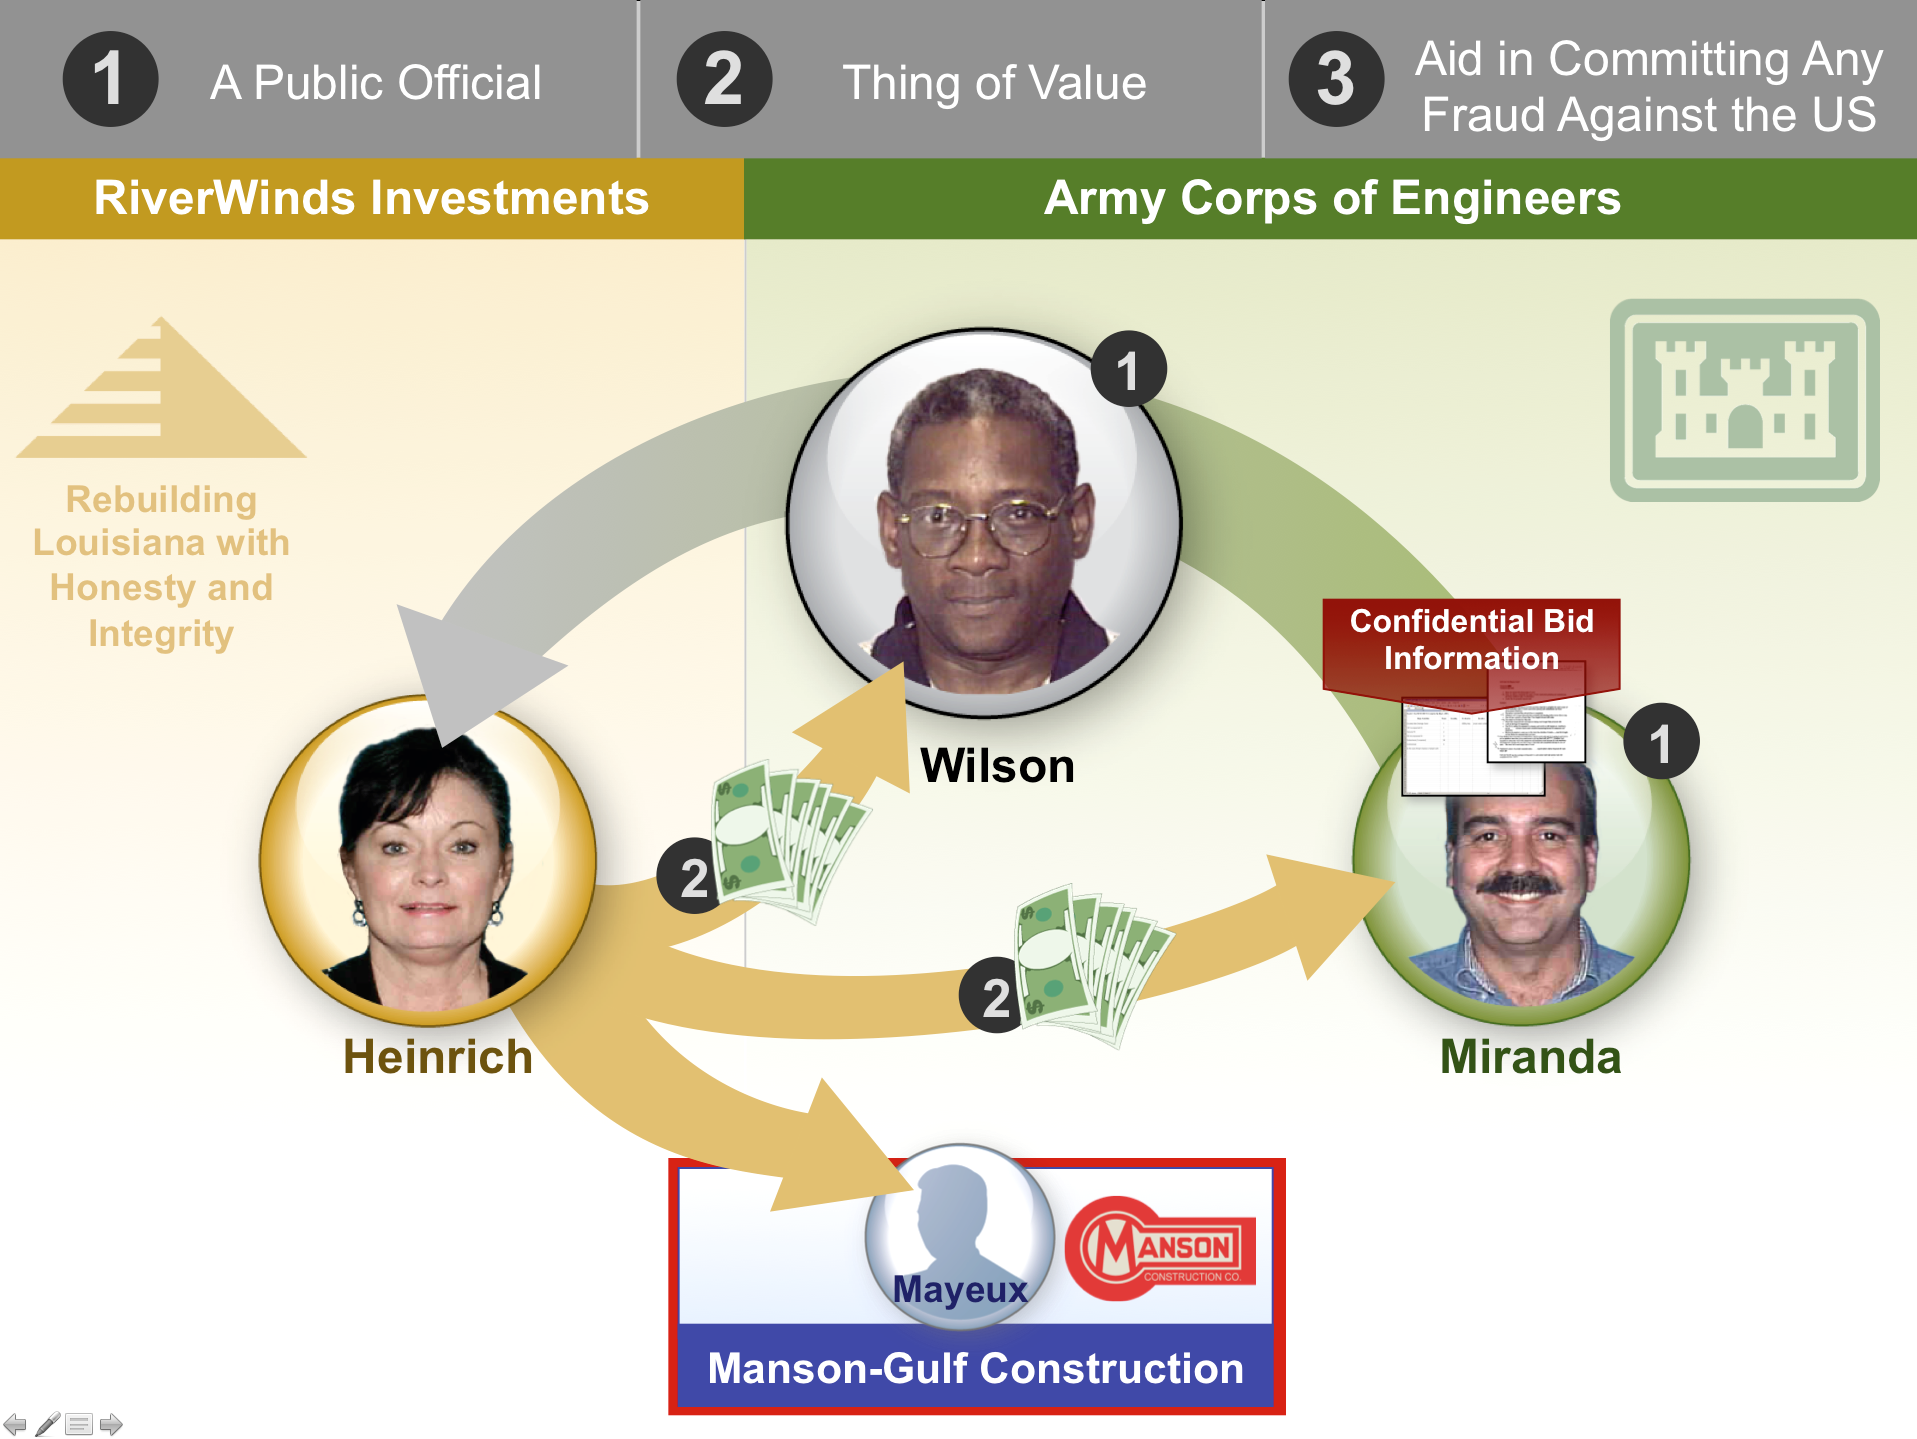 elements of crime trial graphic